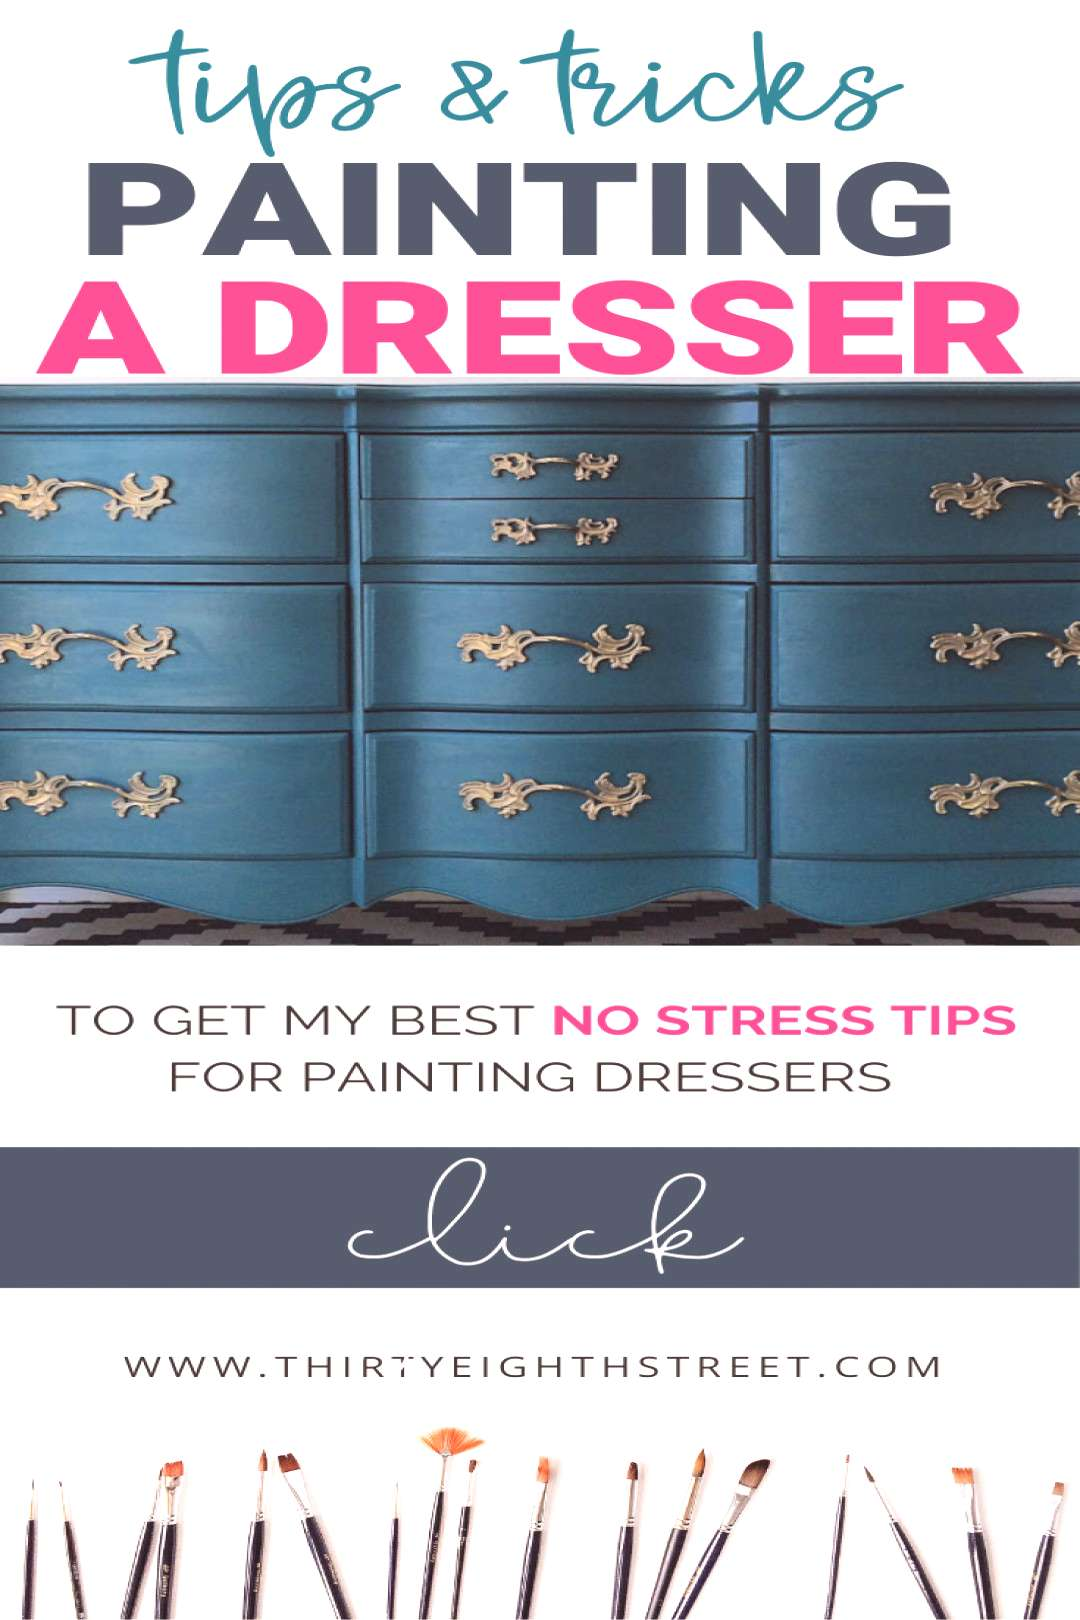 TOP TIPS FOR PAINTING DRESSERS This tips and tricks will help you paint a dresser beautifully! Pain